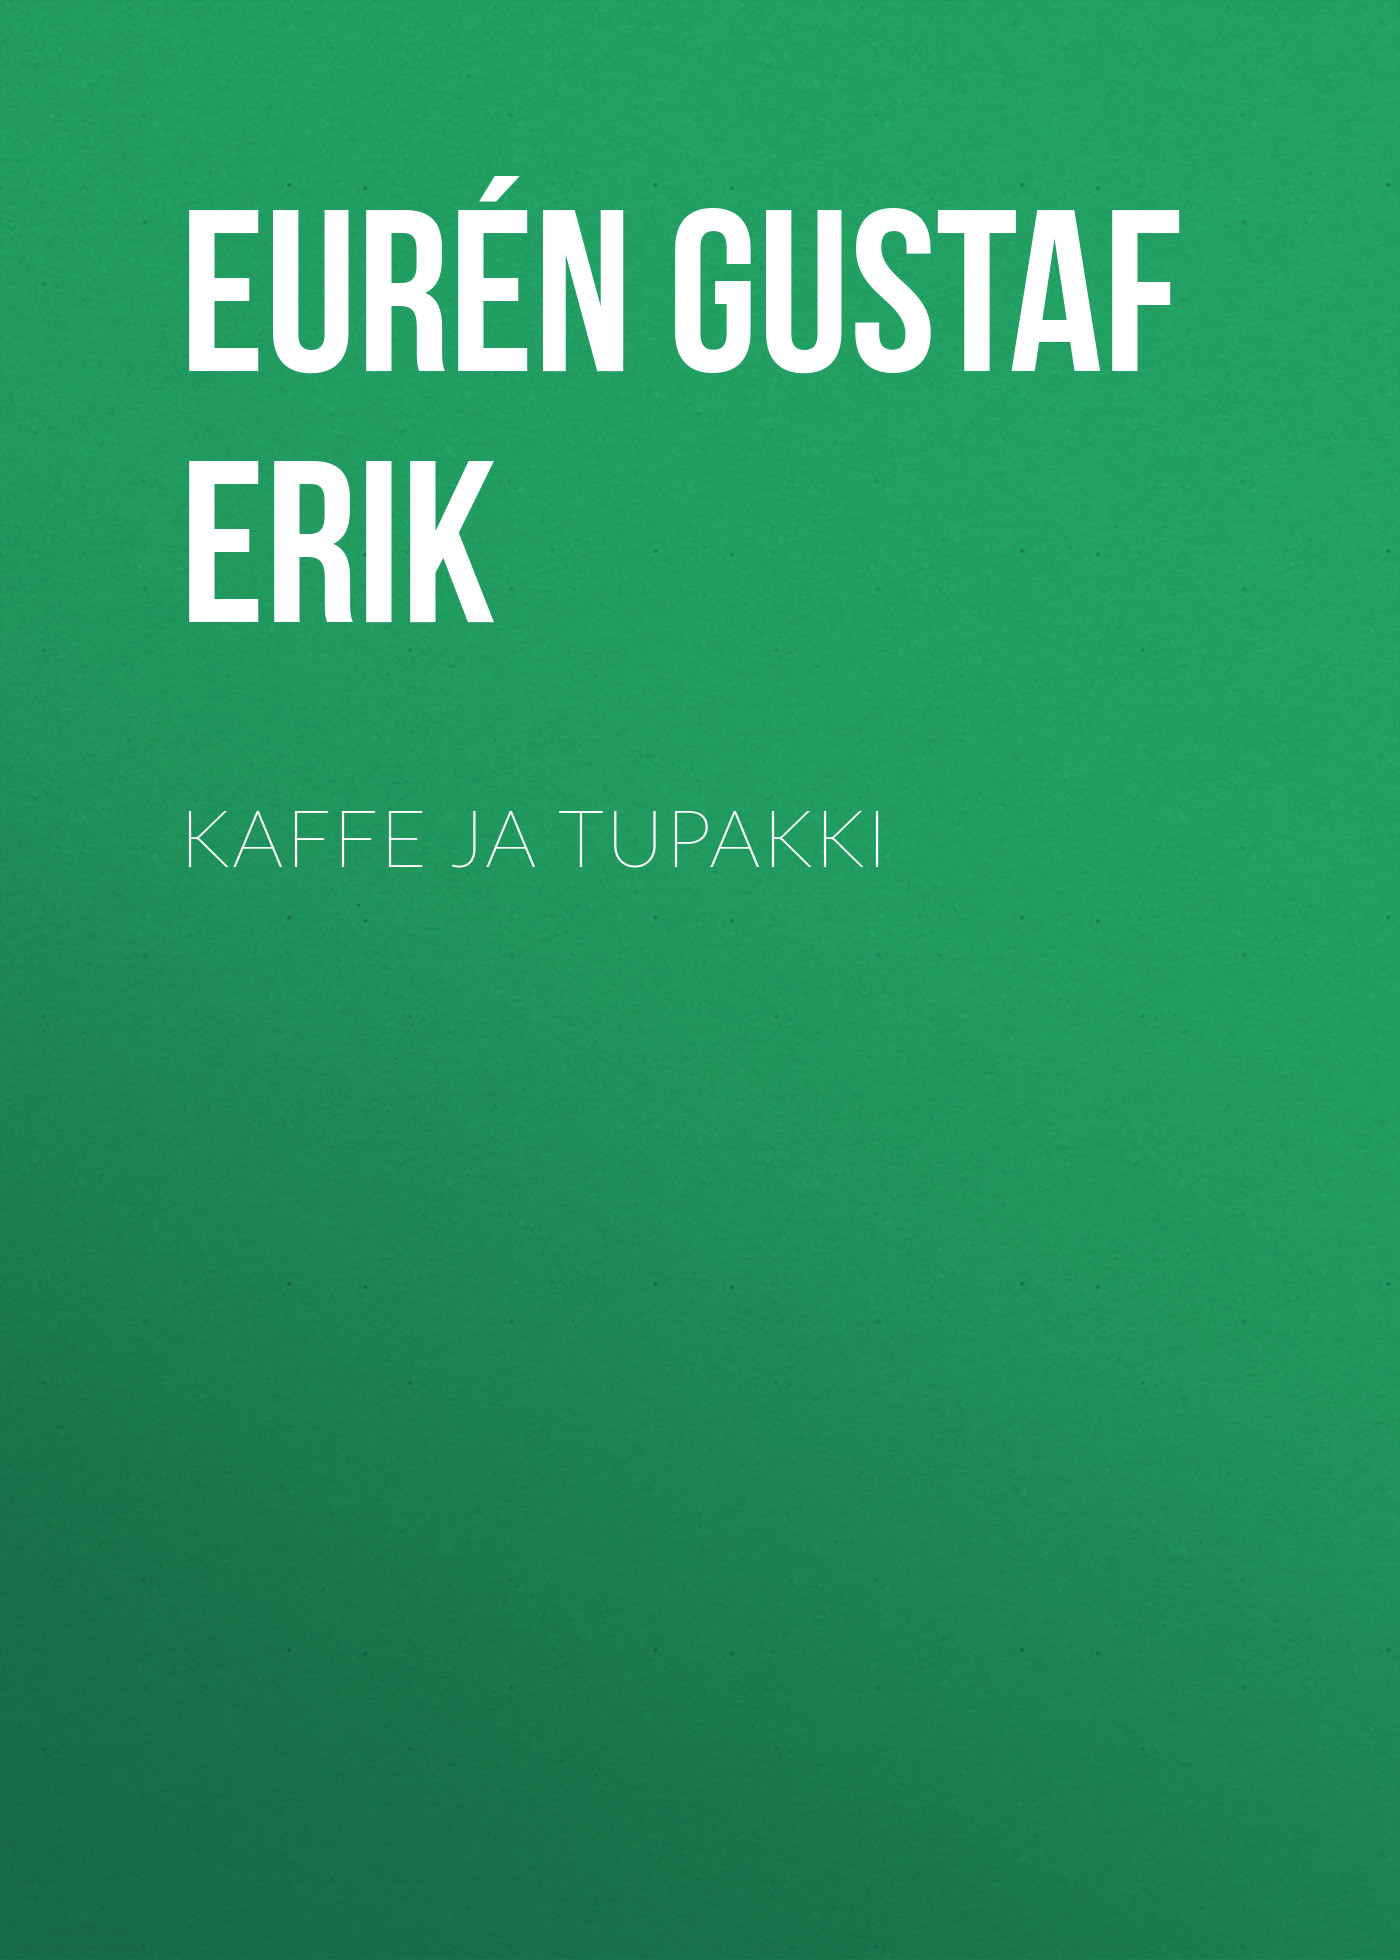 Eurén Gustaf Erik Kaffe ja Tupakki 1pcs 88se9230a1 naa2c000 88se9230 naa2 qfn in stock 100% new and original